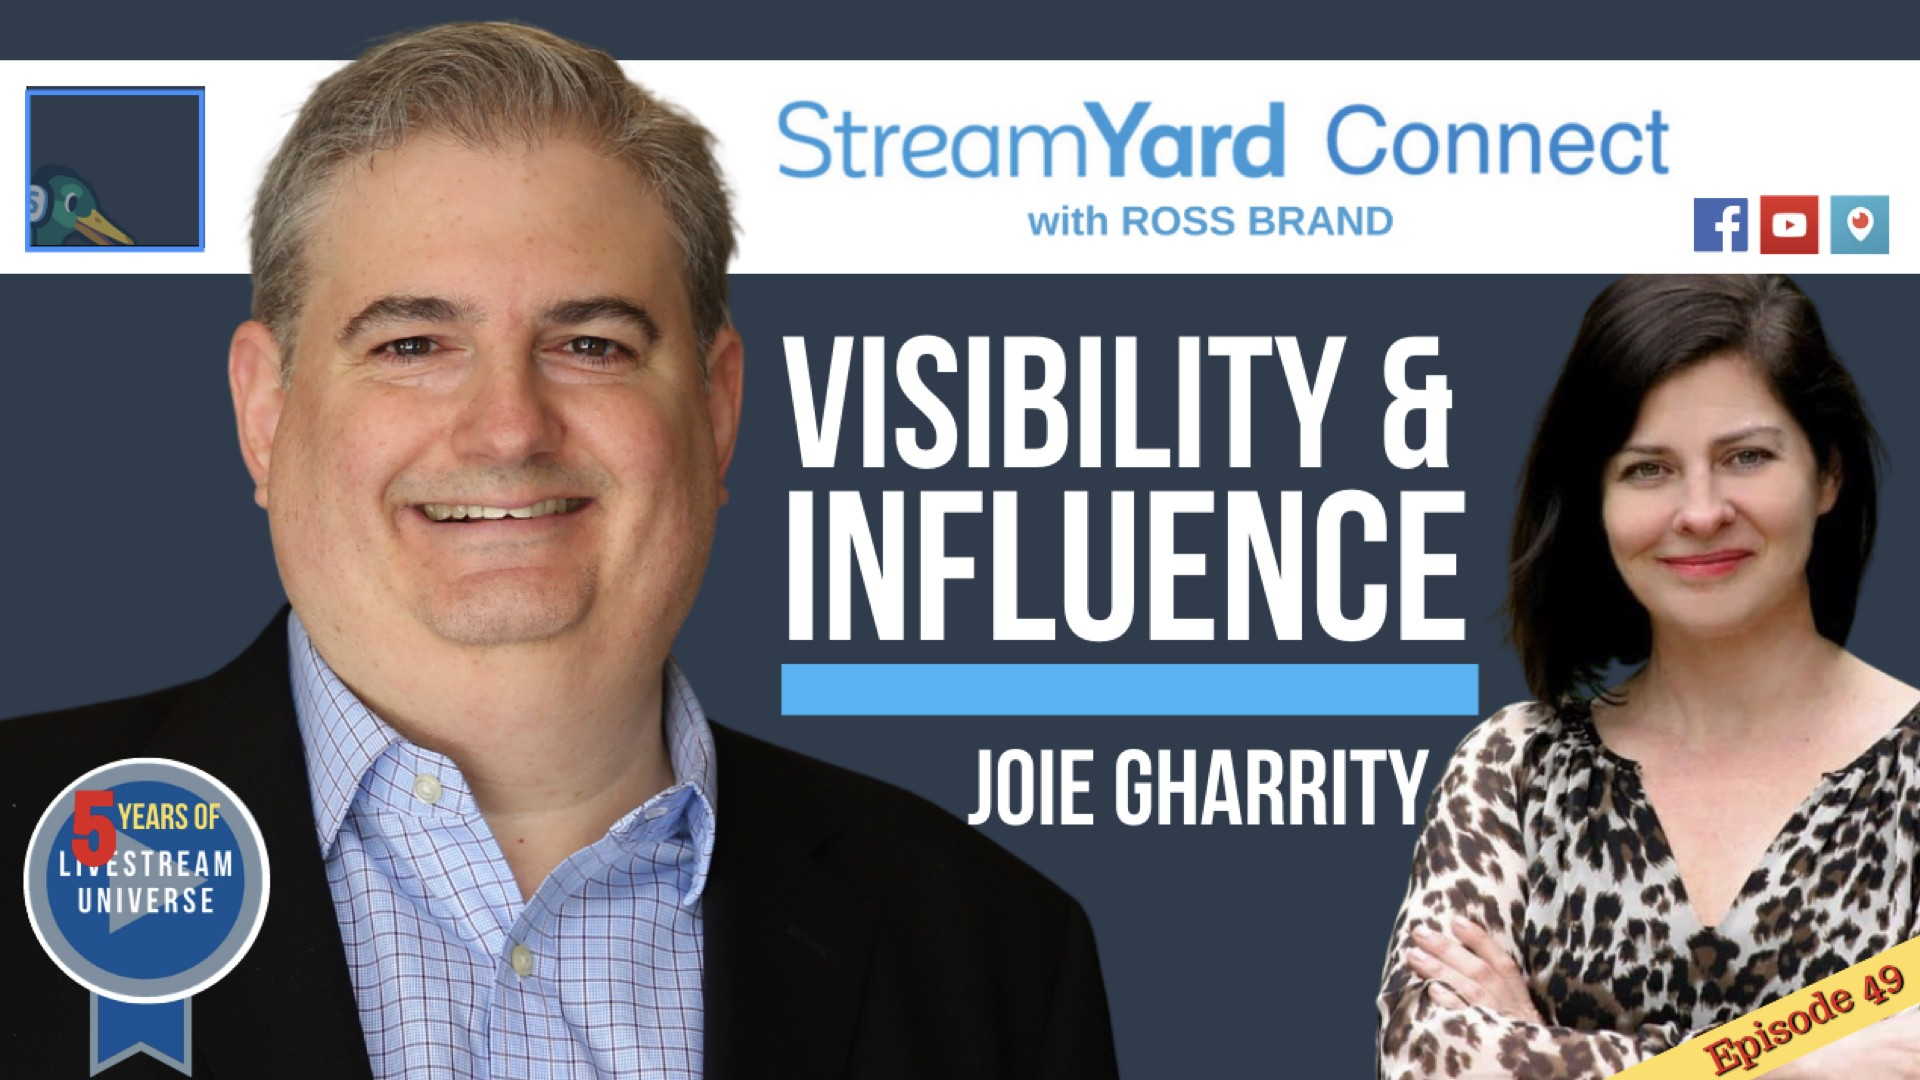 StreamYard Connect Ross Brand Joie Gharrity